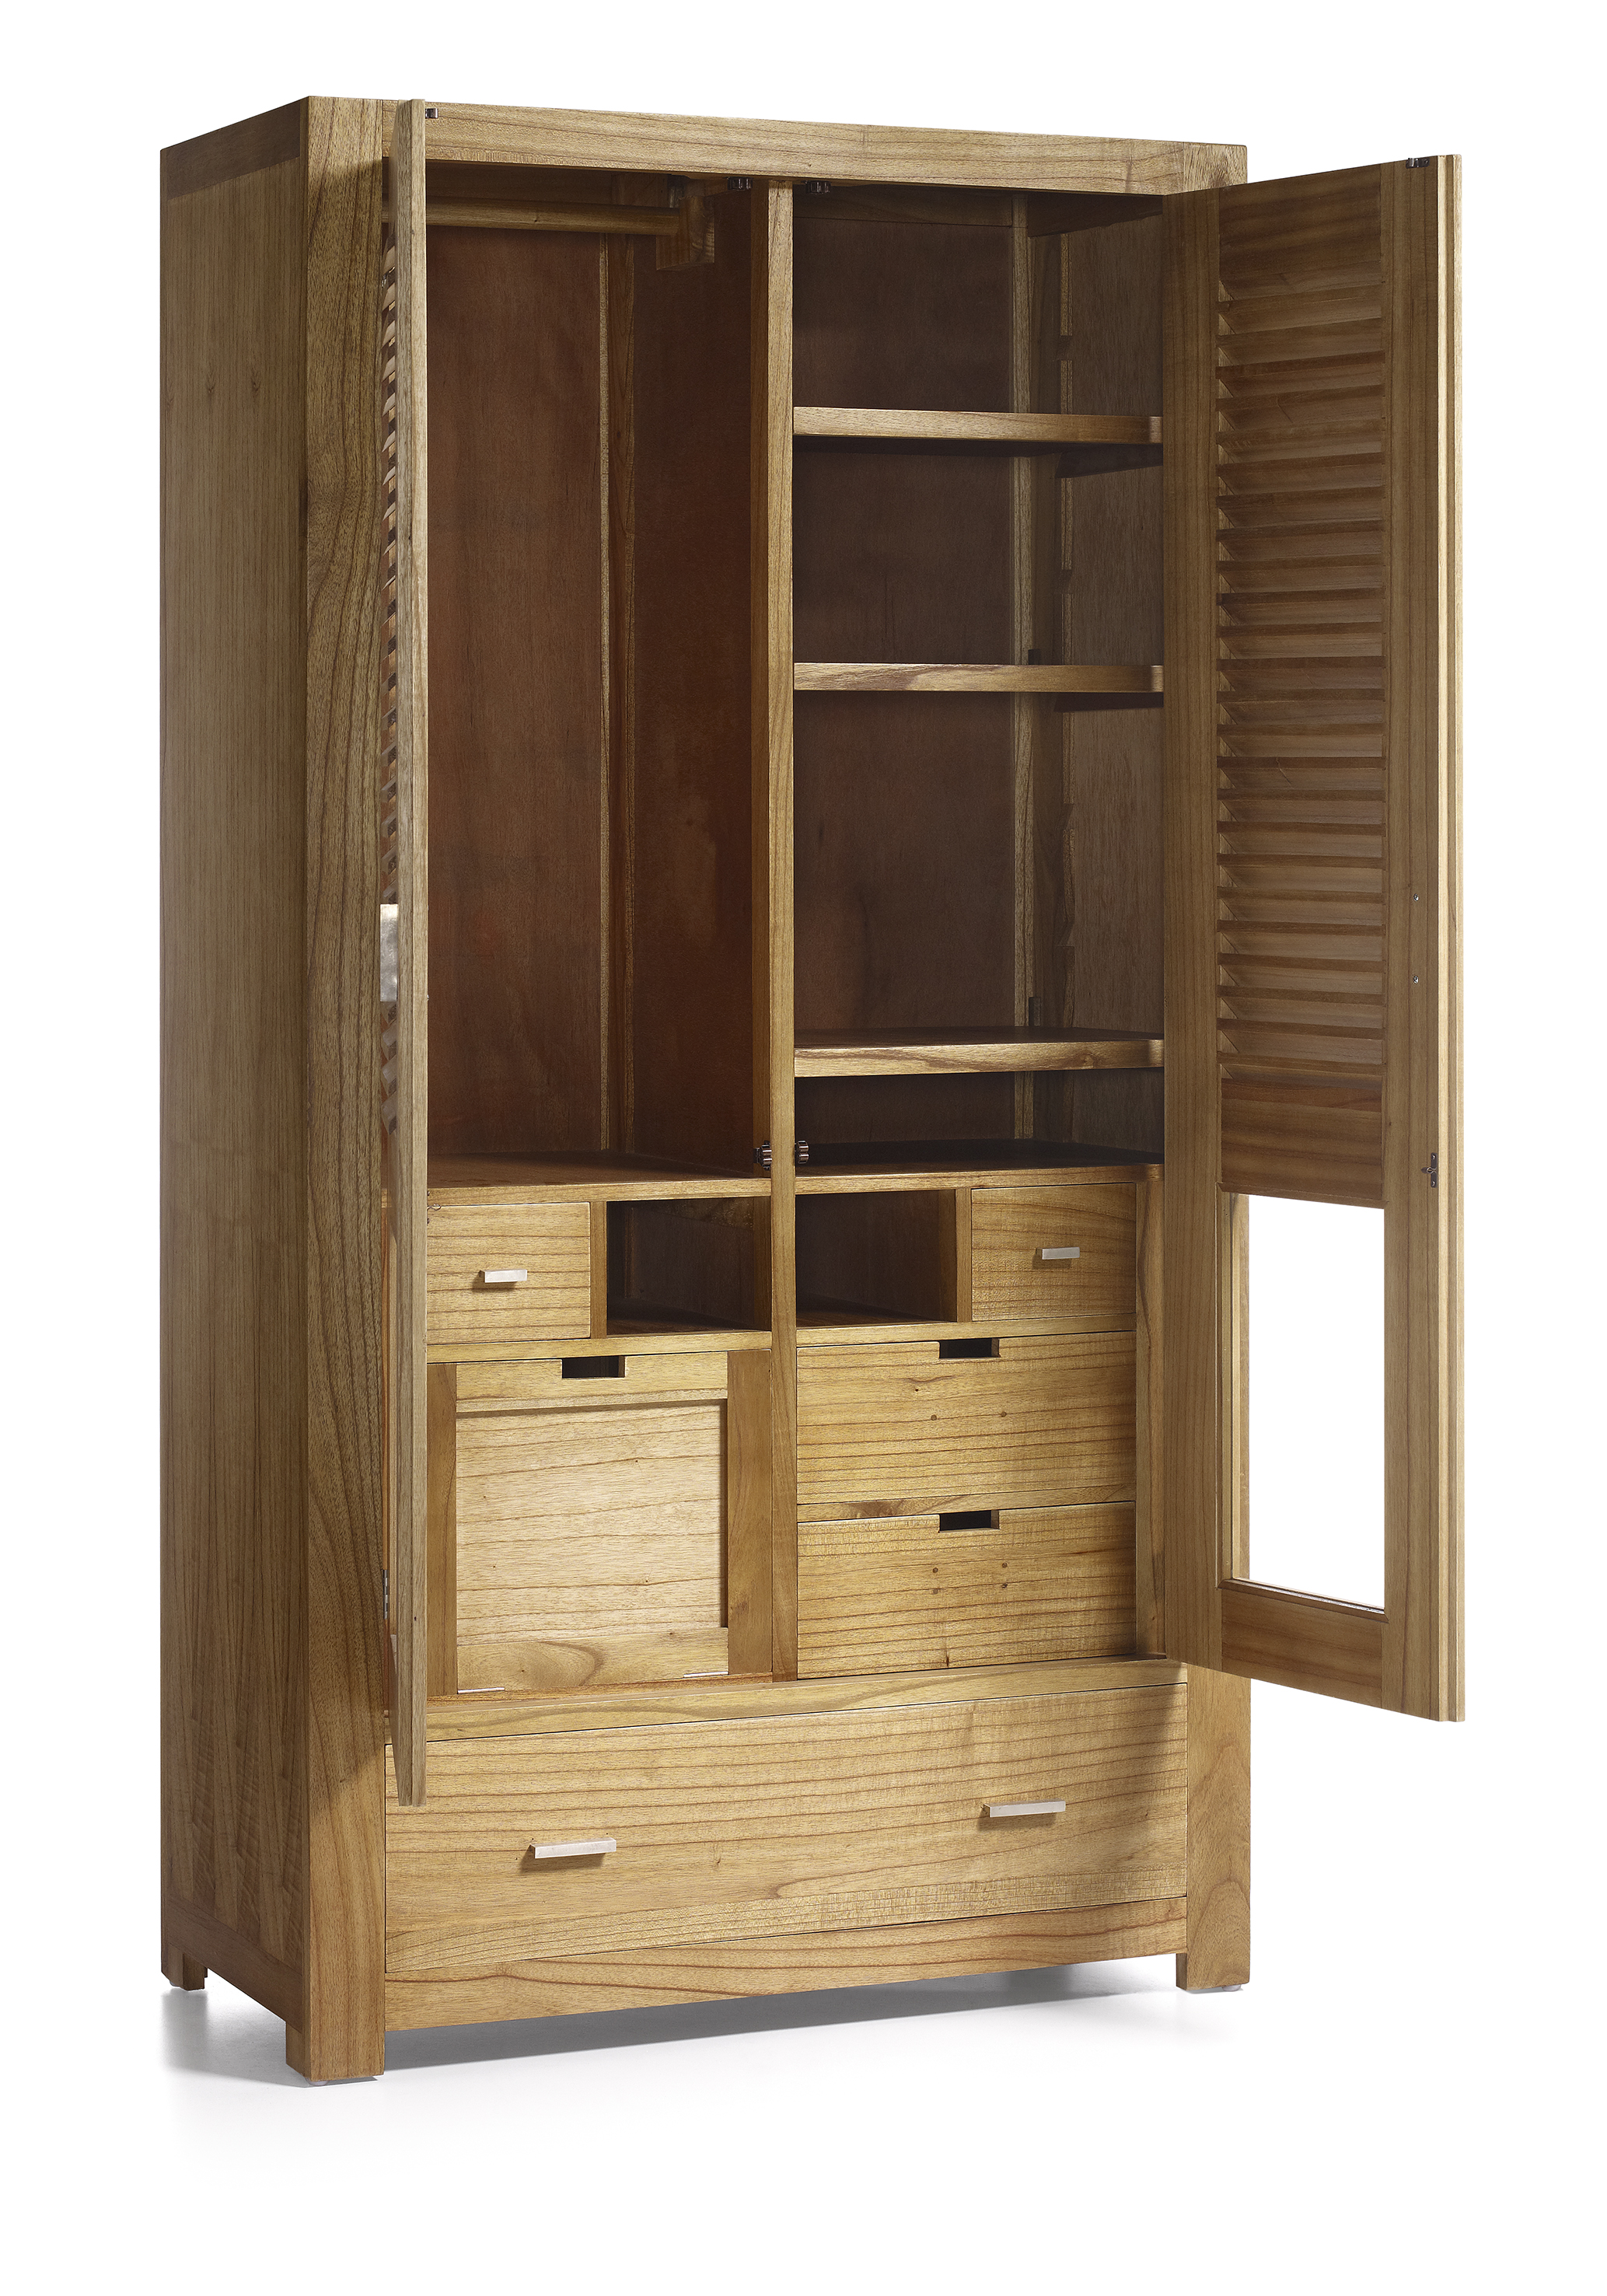 armoire penderie en bois naturel 5 tiroirs 2 portes avec rangement chaussures 108 50 200. Black Bedroom Furniture Sets. Home Design Ideas